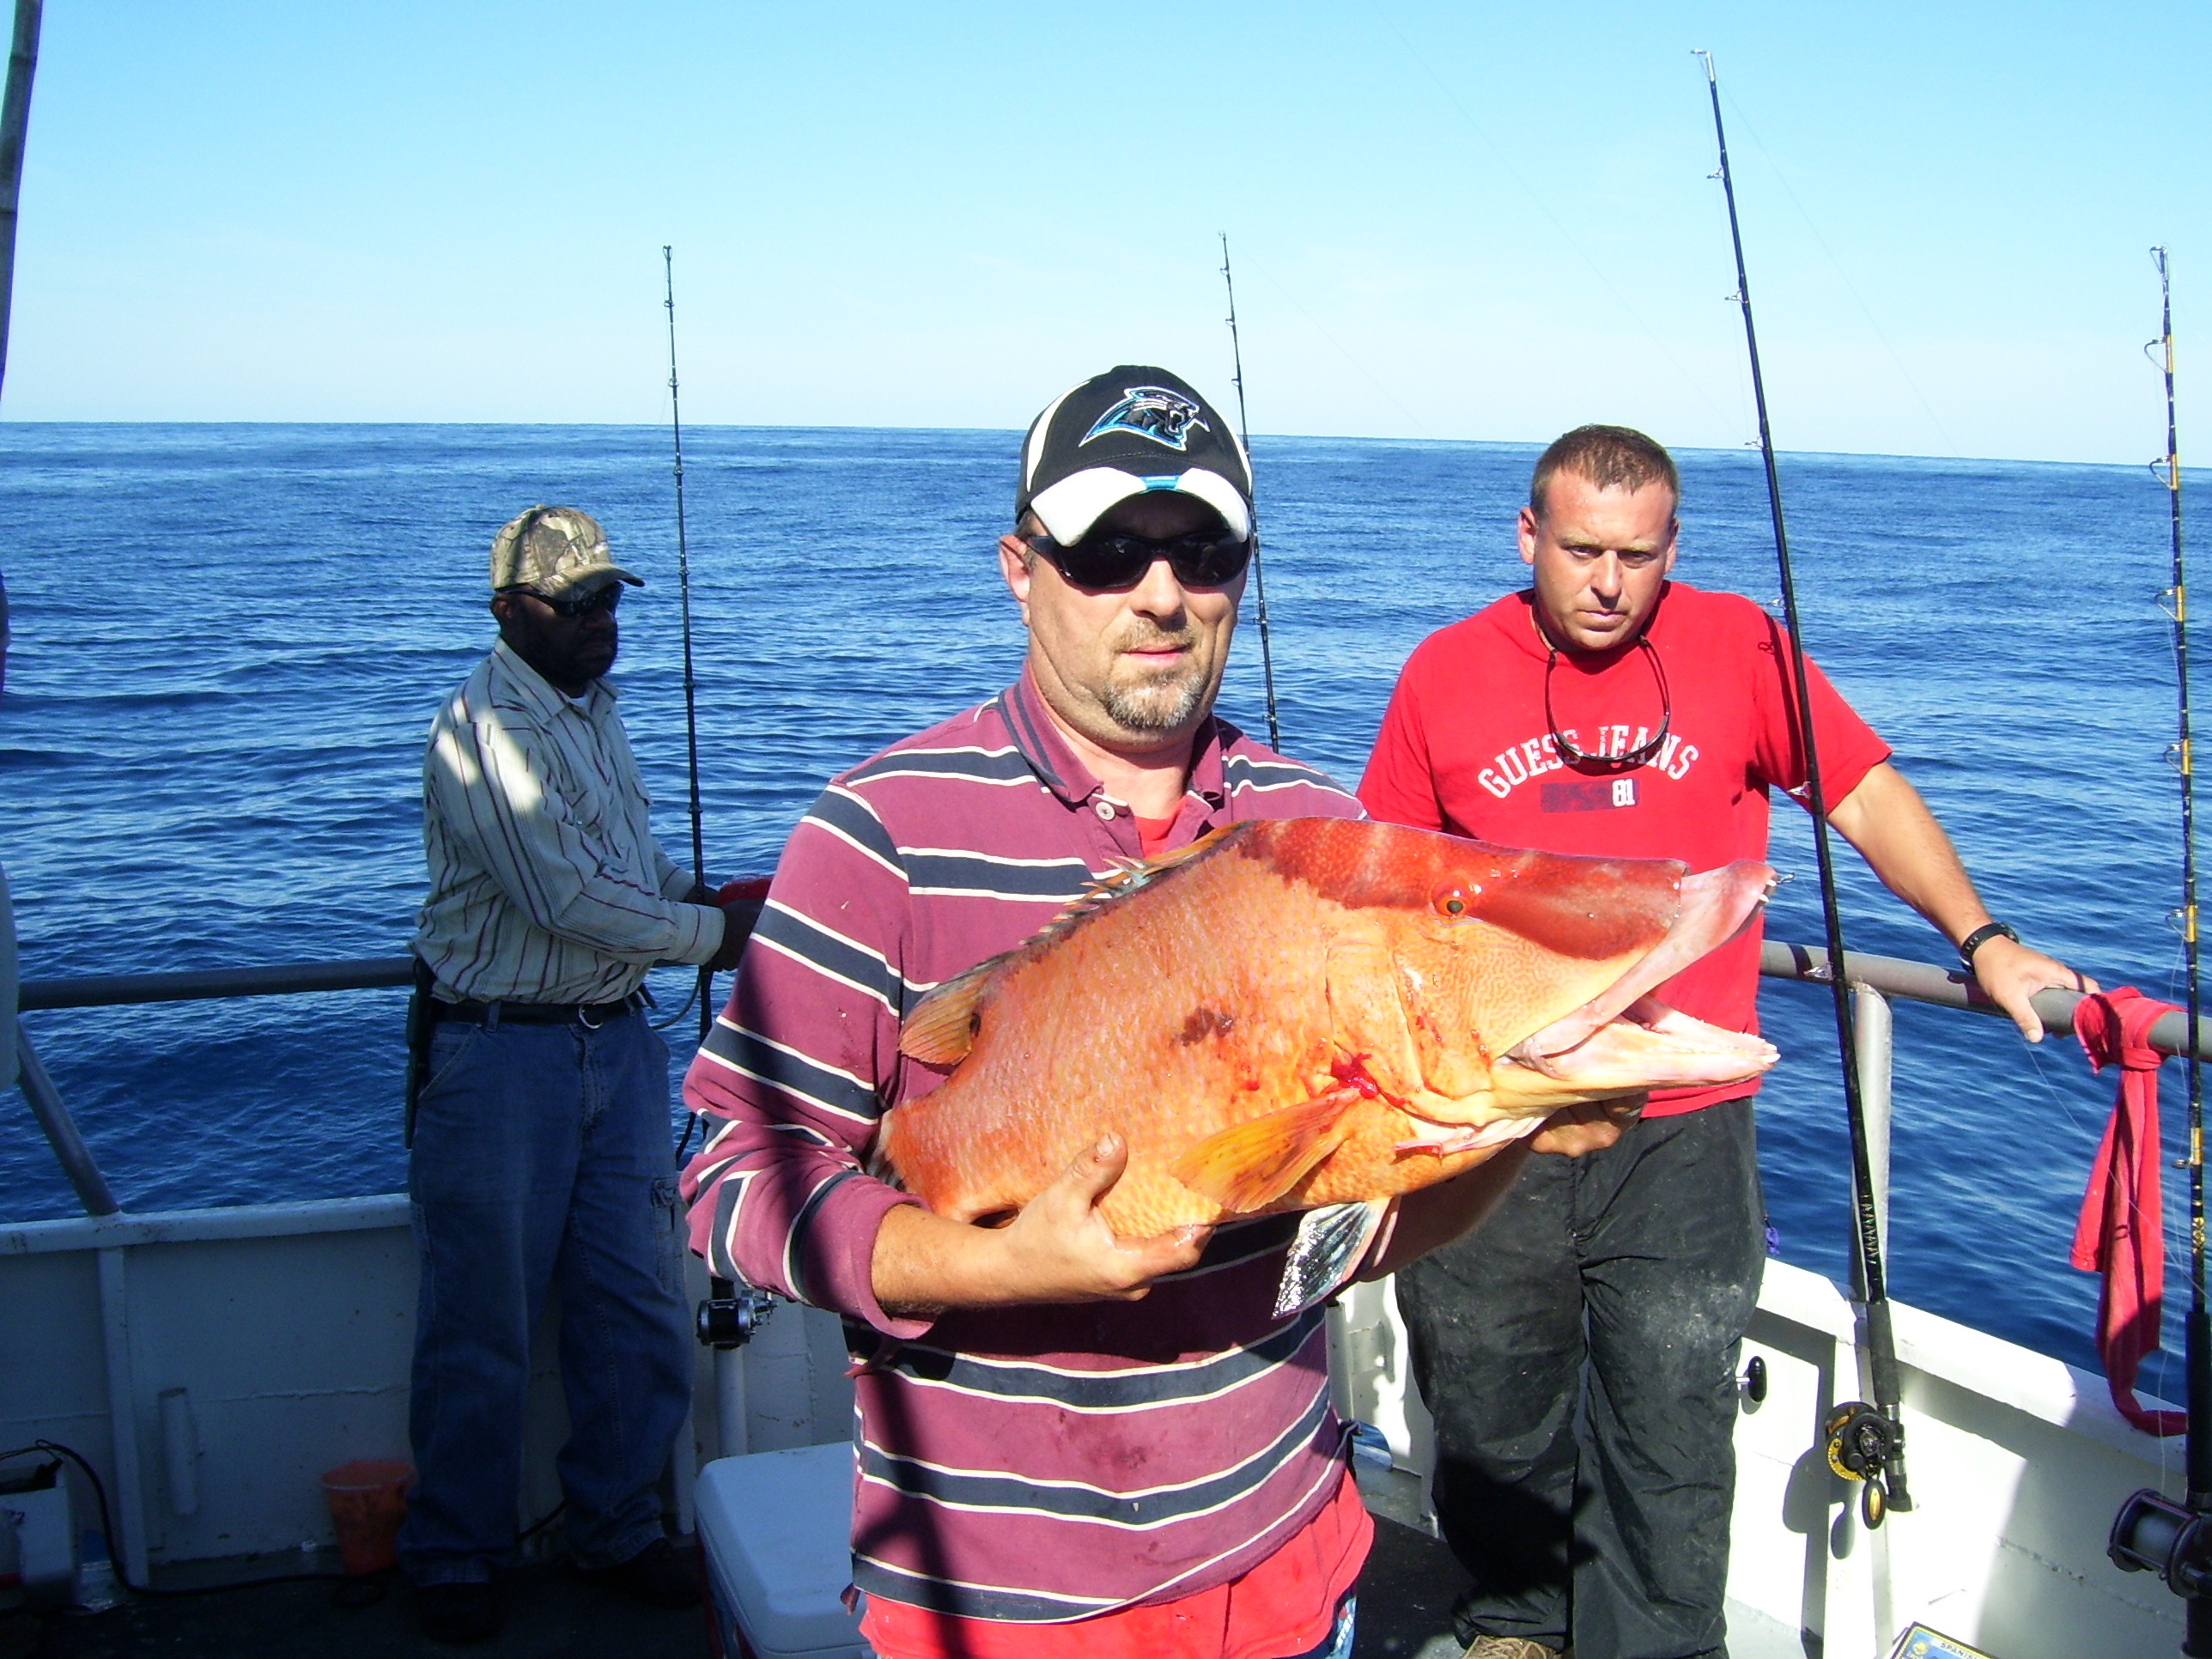 Fishing boat photos voyager fishing charters for Voyager deep sea fishing